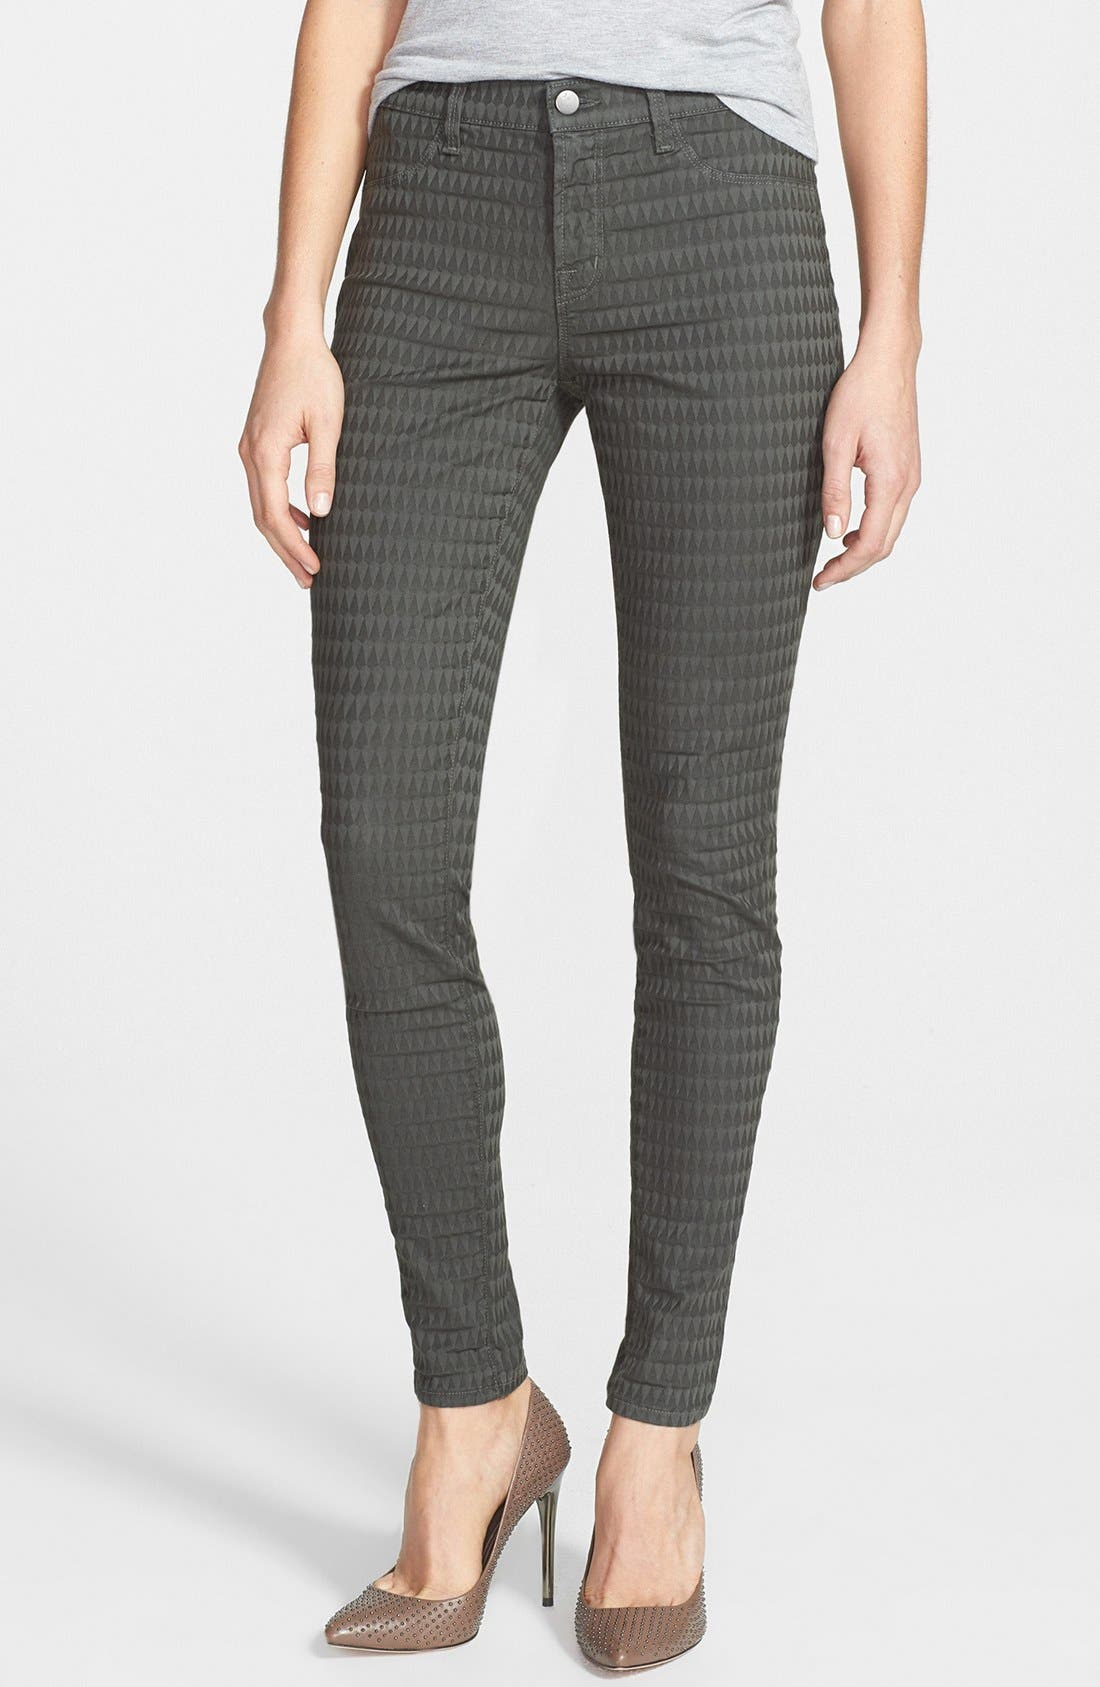 Alternate Image 1 Selected - J Brand Jacquard Skinny Jeans (Mica)